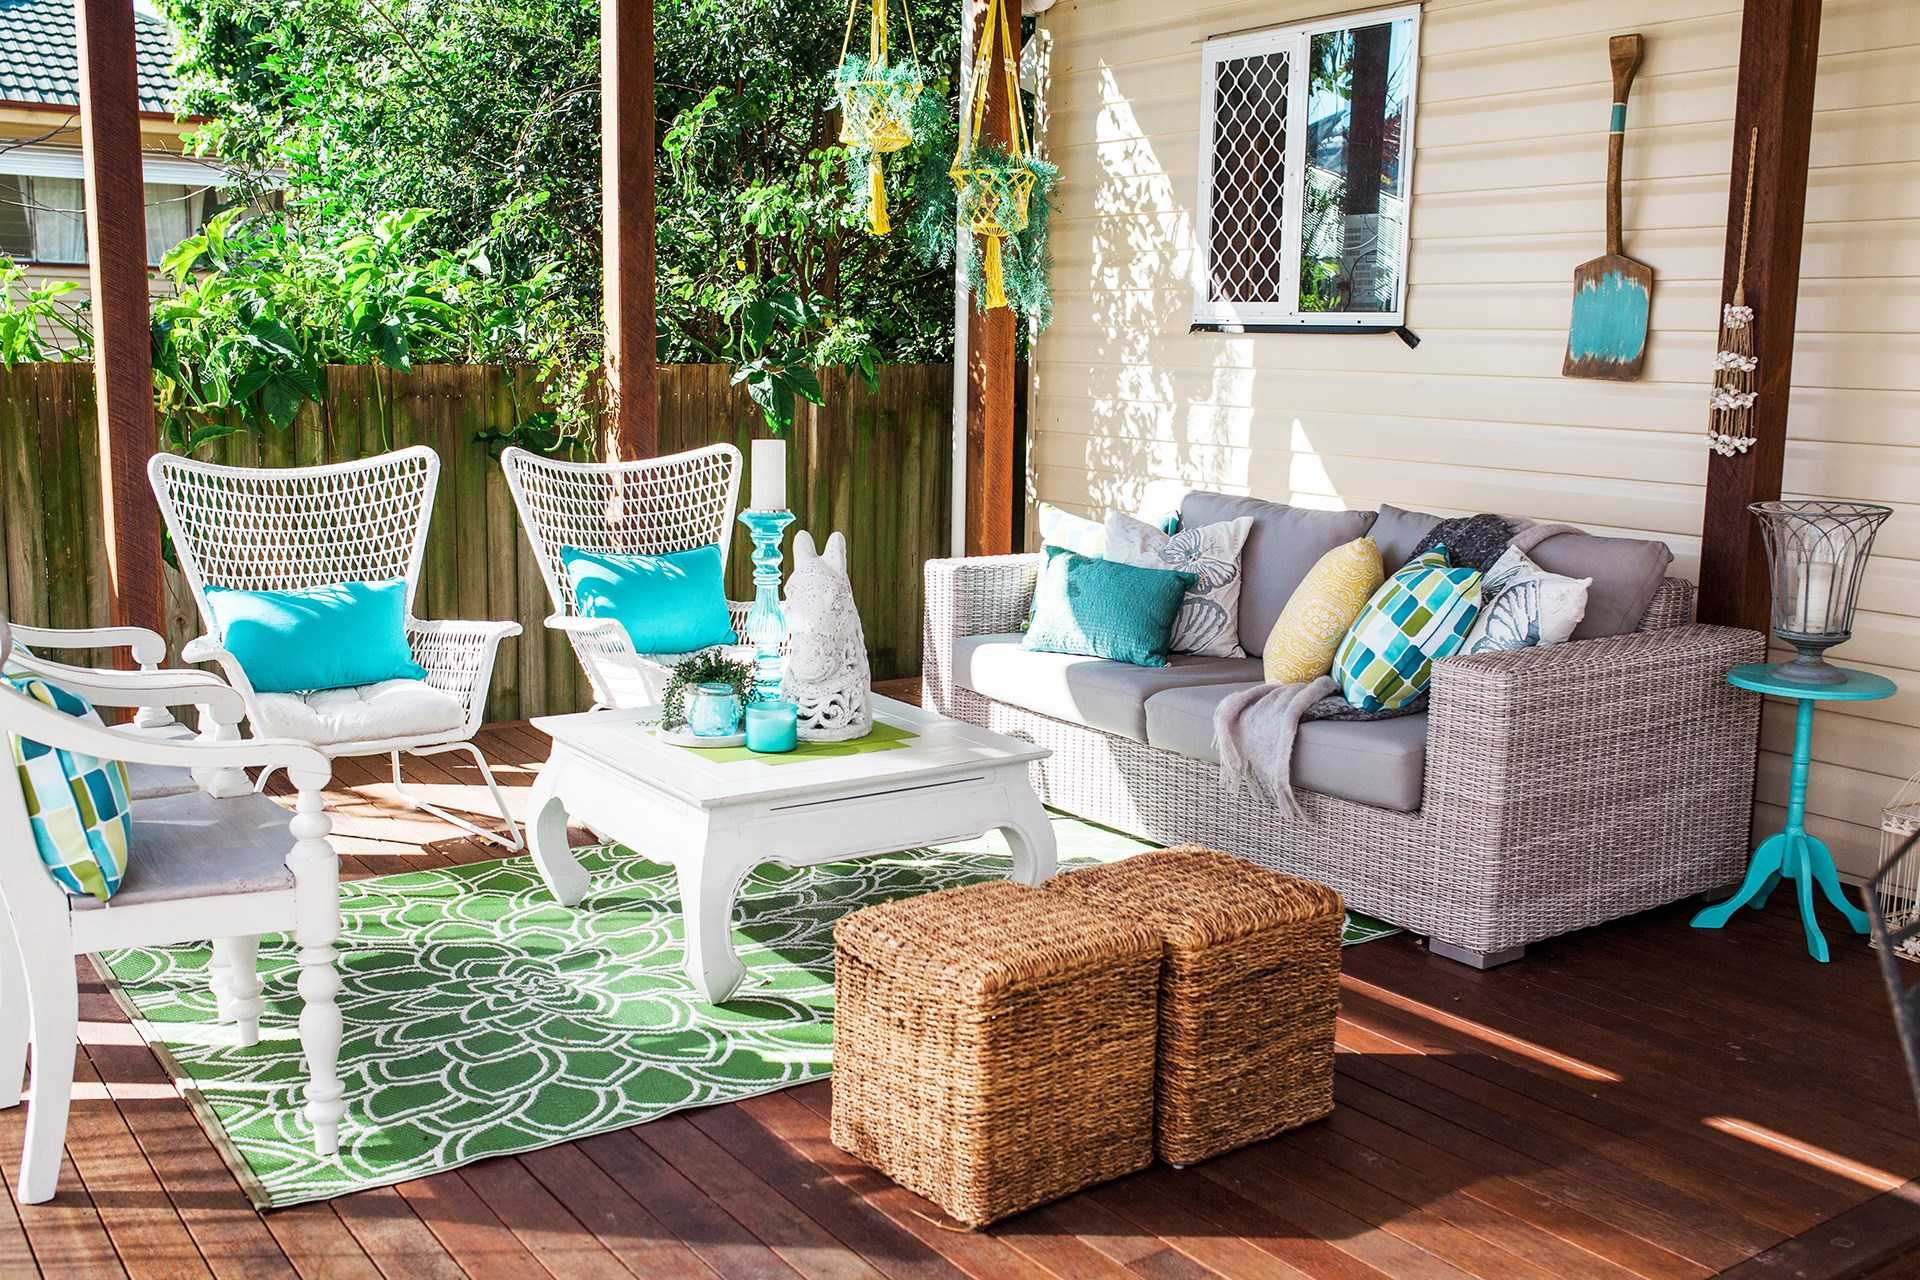 """The outdoor sitting area of this [Brisbane home](http://www.homestolove.com.au/diy-renovation-of-a-queenslander-cottage-4264